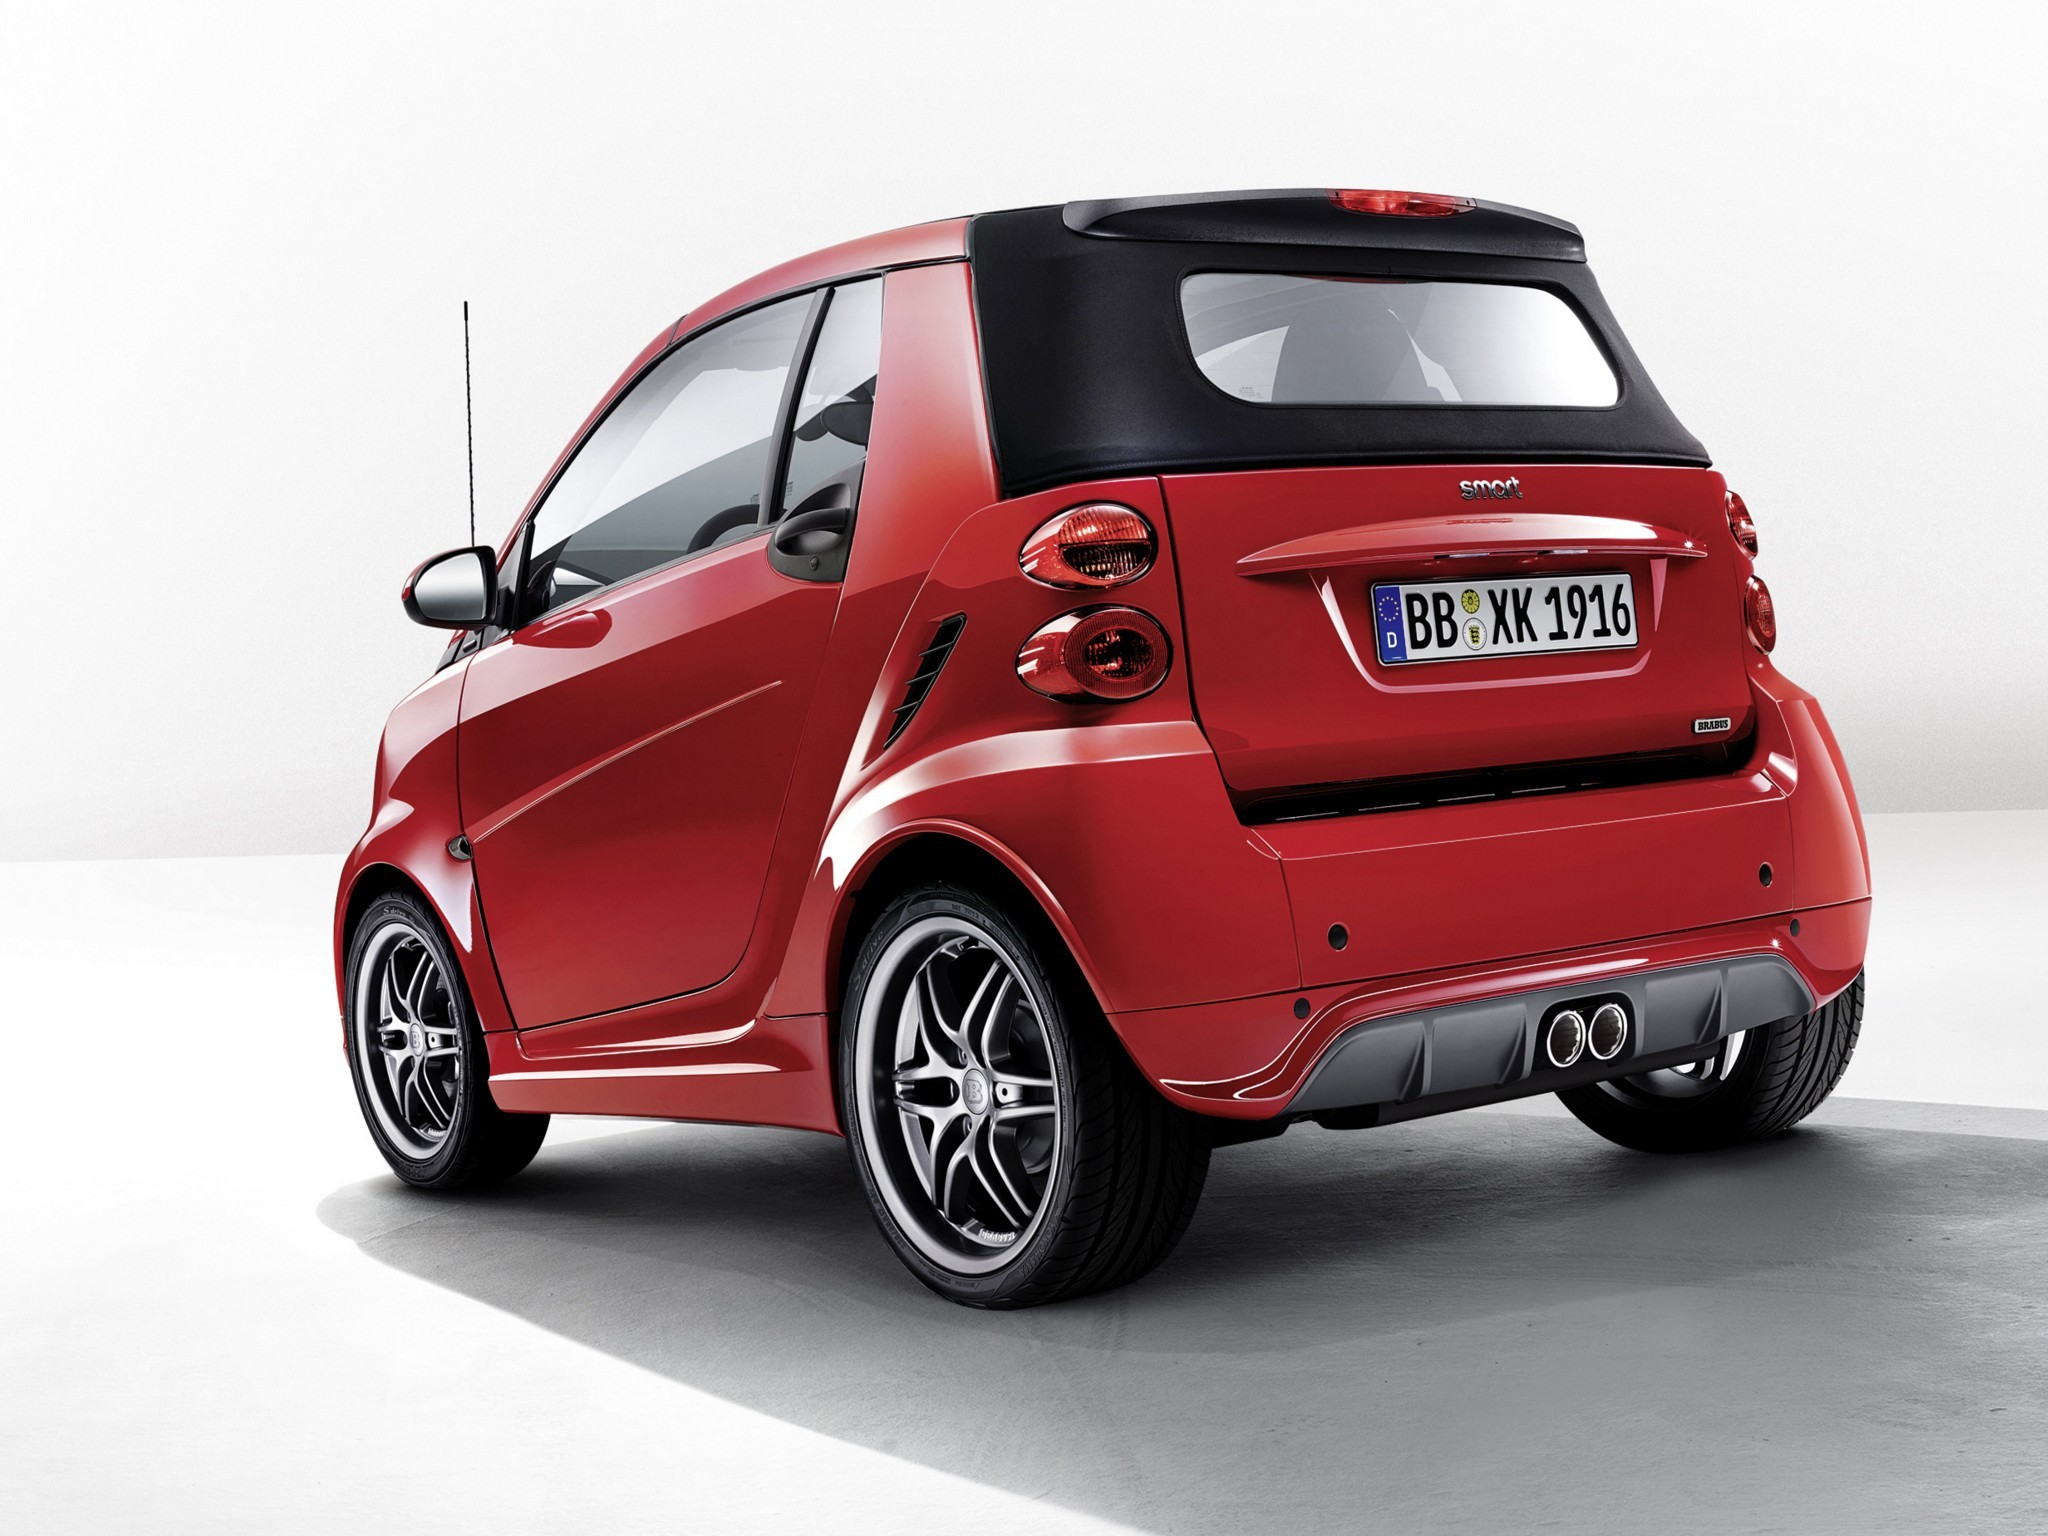 2014 Brabus Smart Fortwo Cabrio Xclusive Red